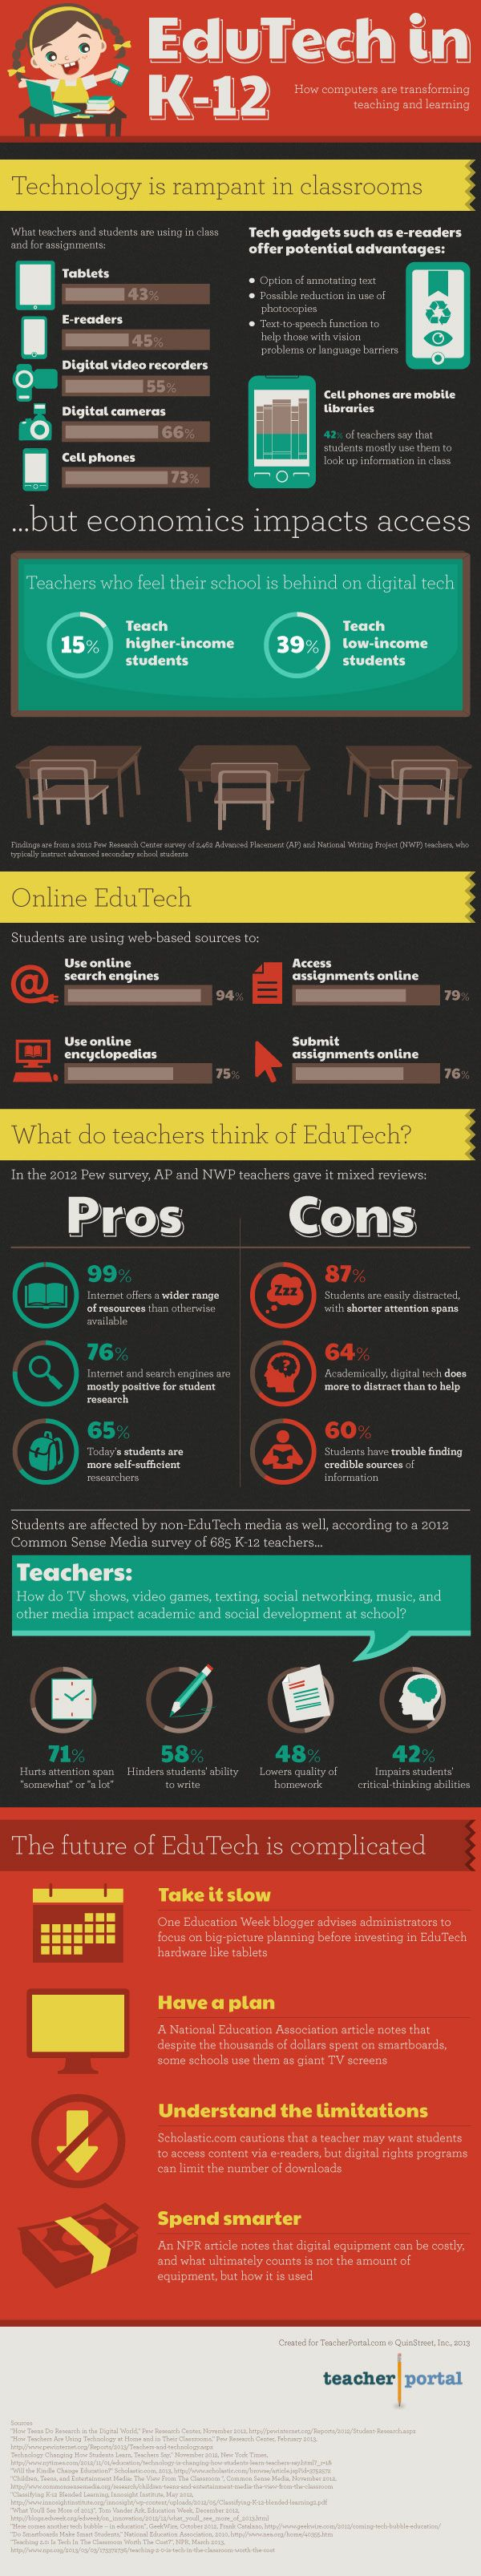 This infographic takes a look at what kind of educational technology is being used the most in the classroom, along with the impact it is having. Check it out!